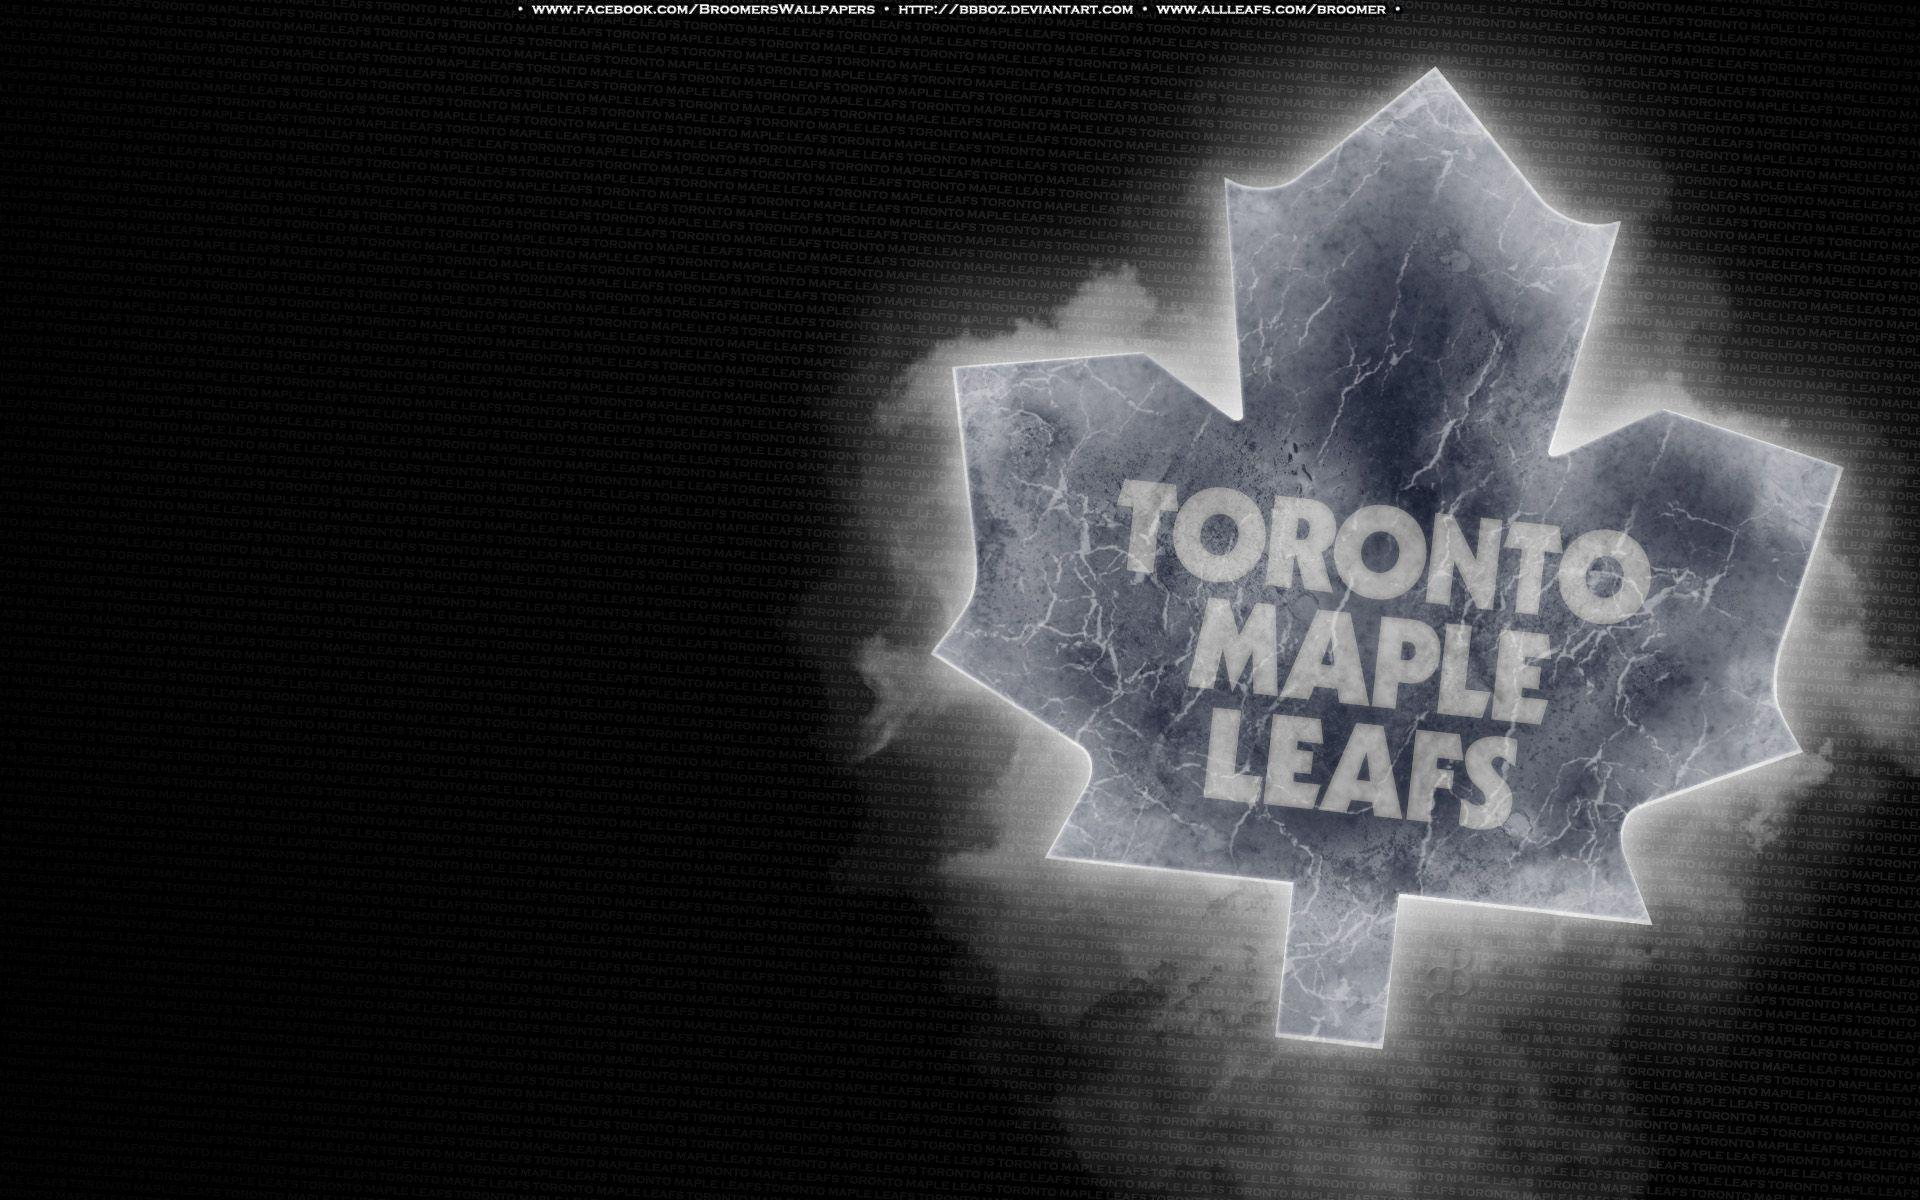 Good evening r/leafs, post your Maple Leaf desktop wallpapers. Or